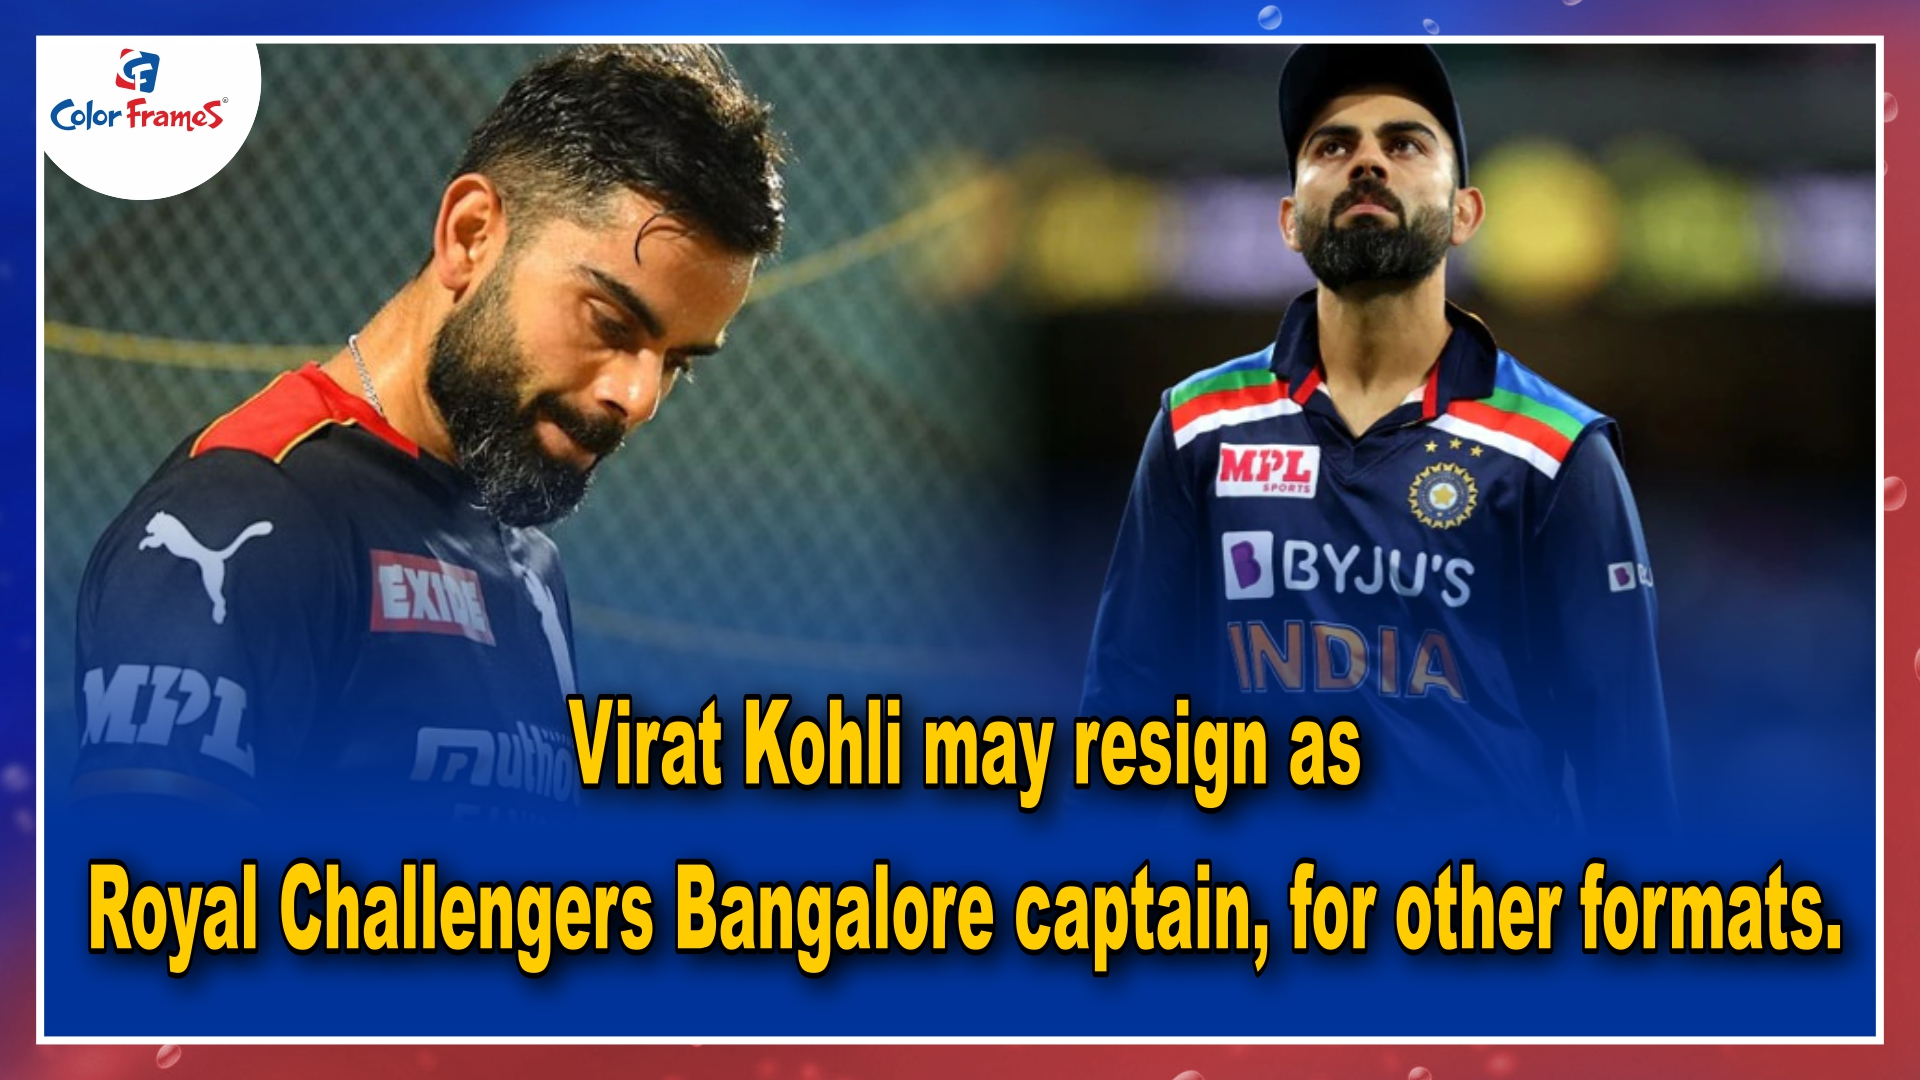 Virat Kohli may resign as Royal Challengers Bangalore captain, for other formats.